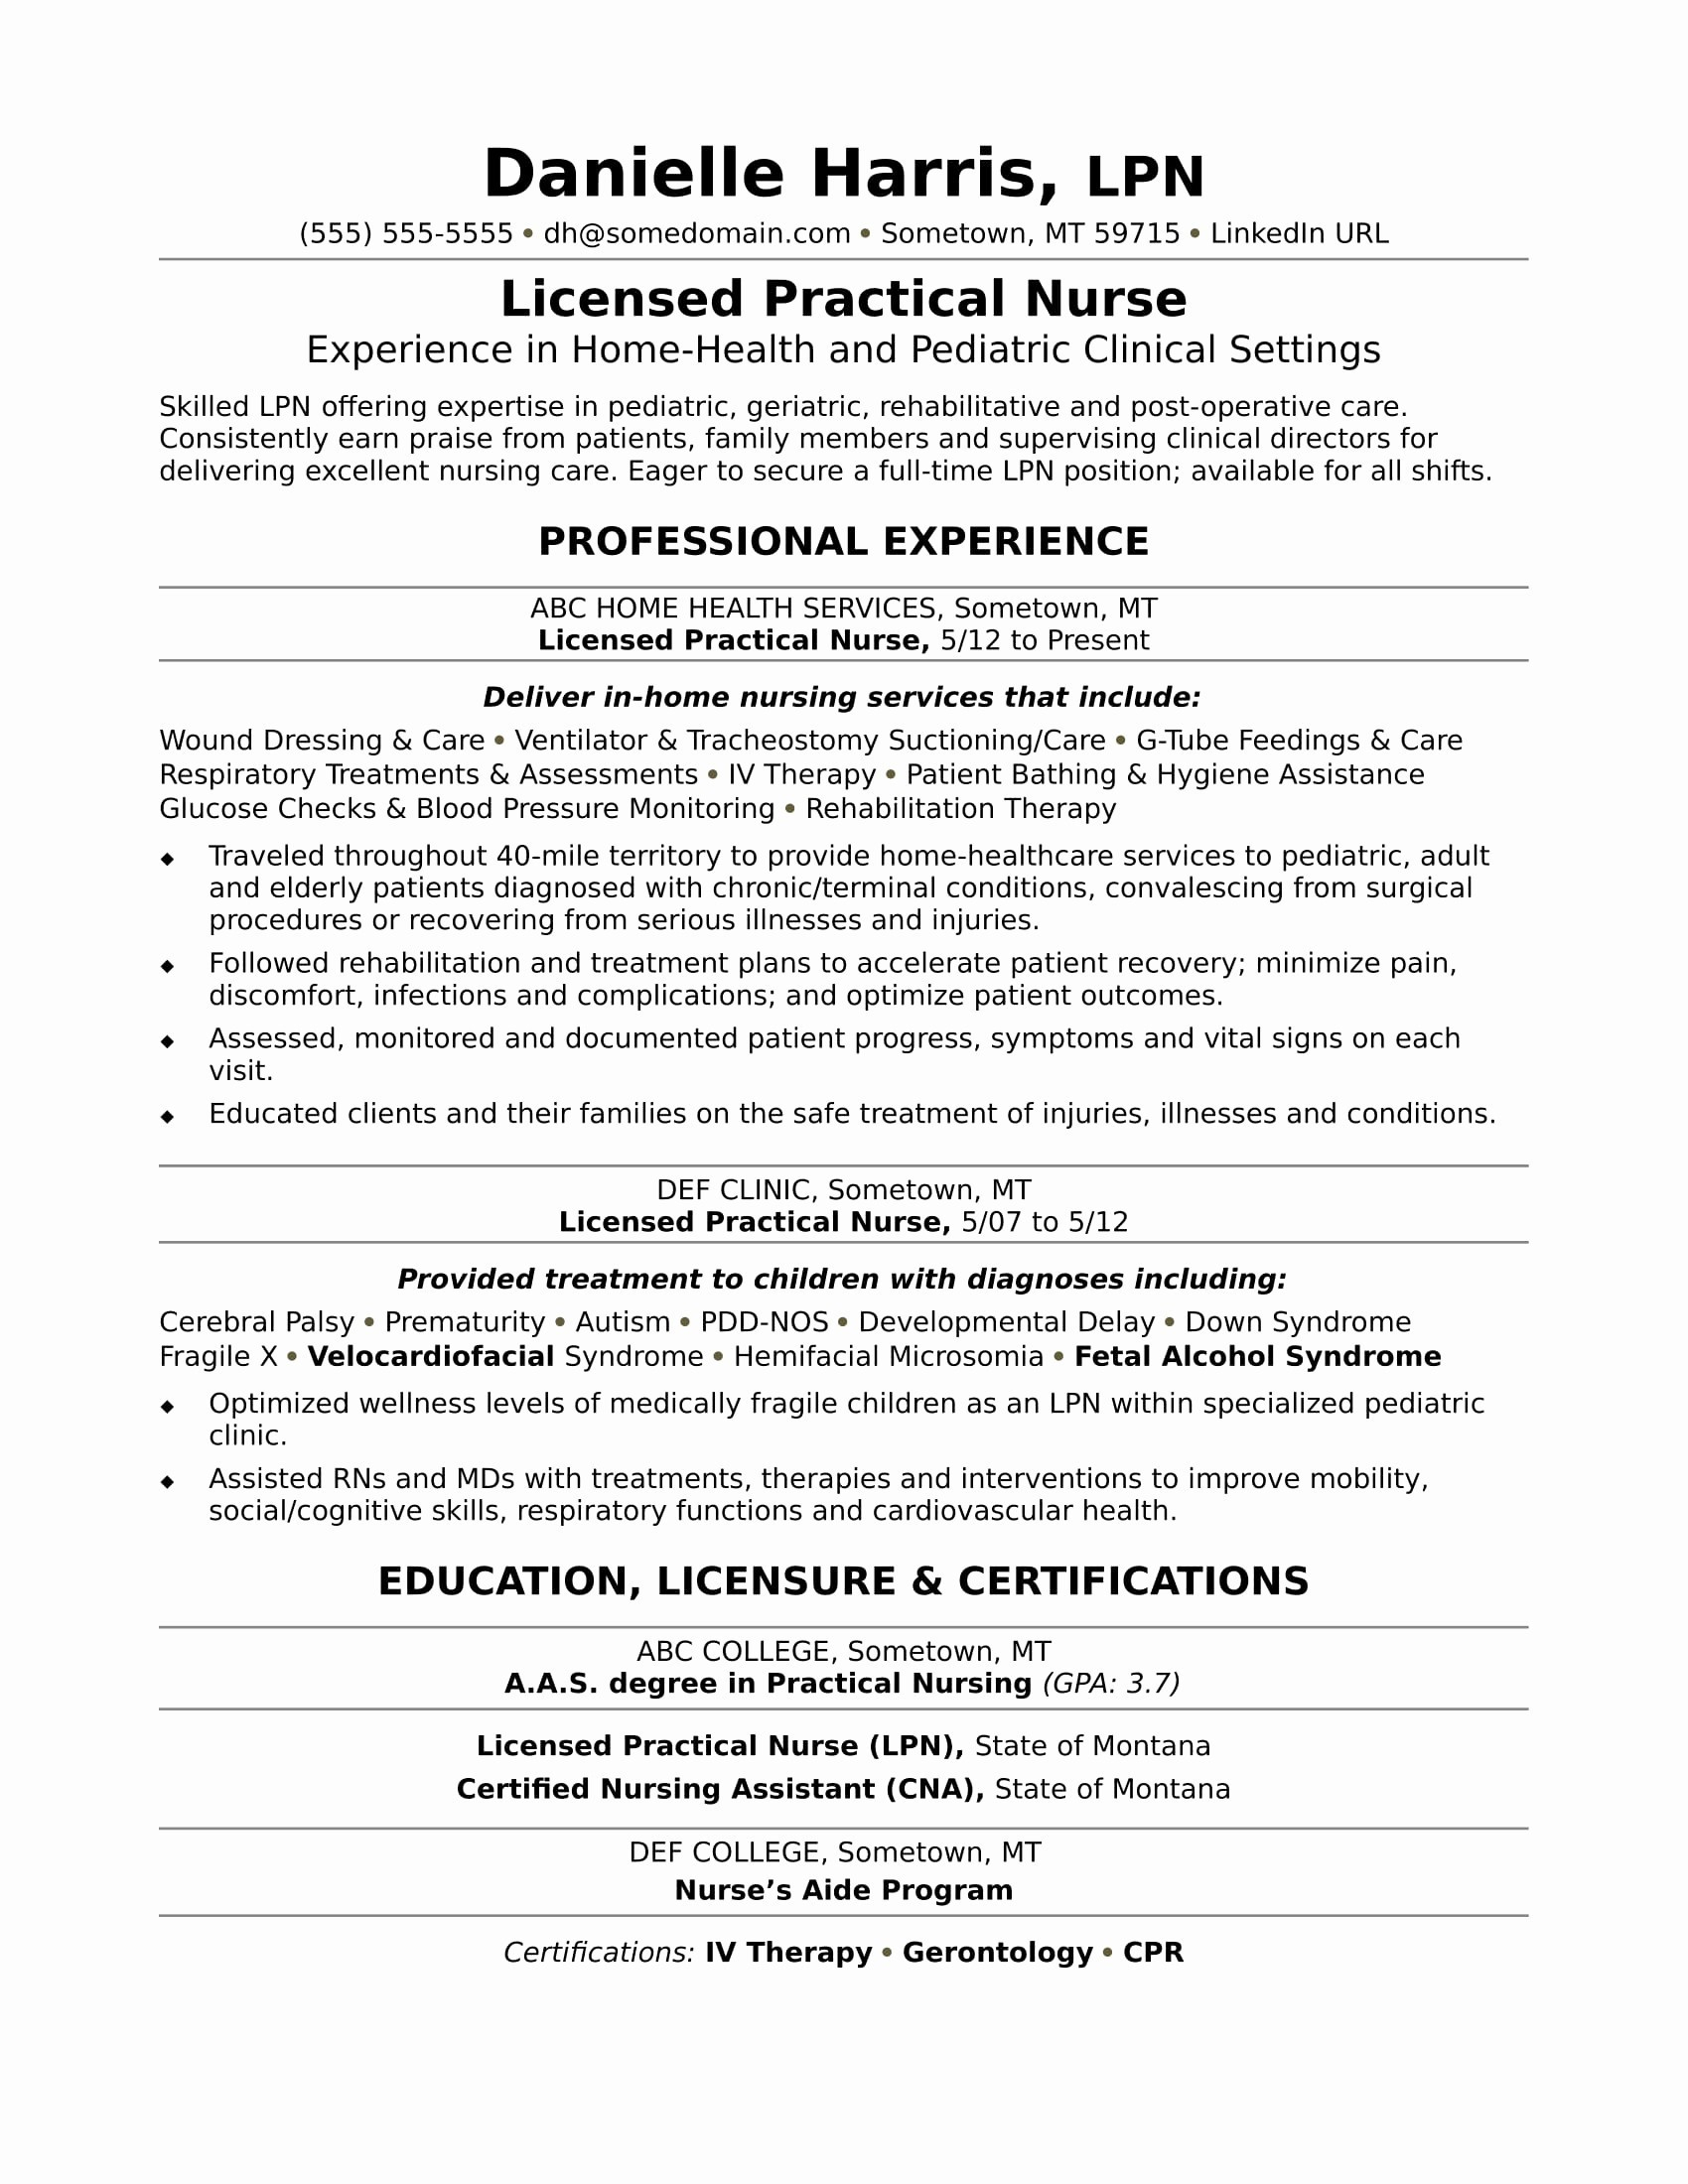 Nursing School Resume - 20 Elegant Graduate School Resume Sample